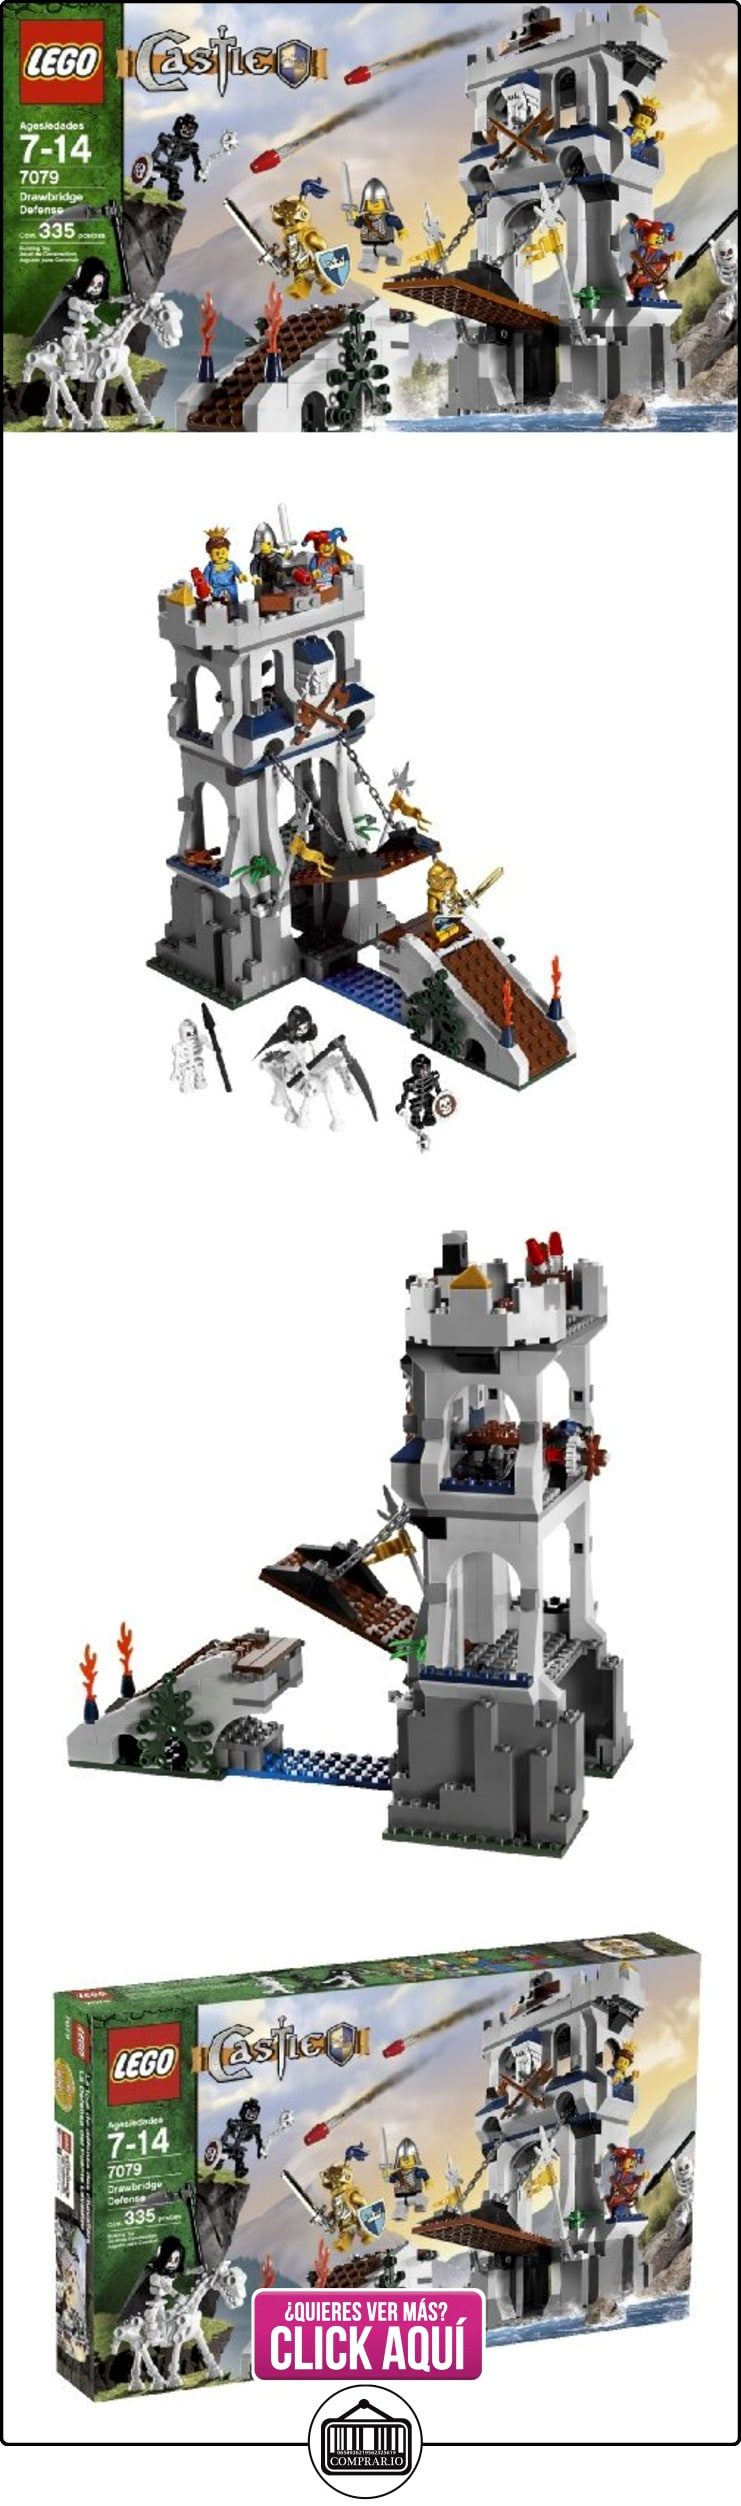 Lego Pirates Set 6296 Shipwreck Island By El Drawbridge Defense 7079 Surtido Ms Amplio Ver Oferta Http Comprario Goto B002zpv3ue